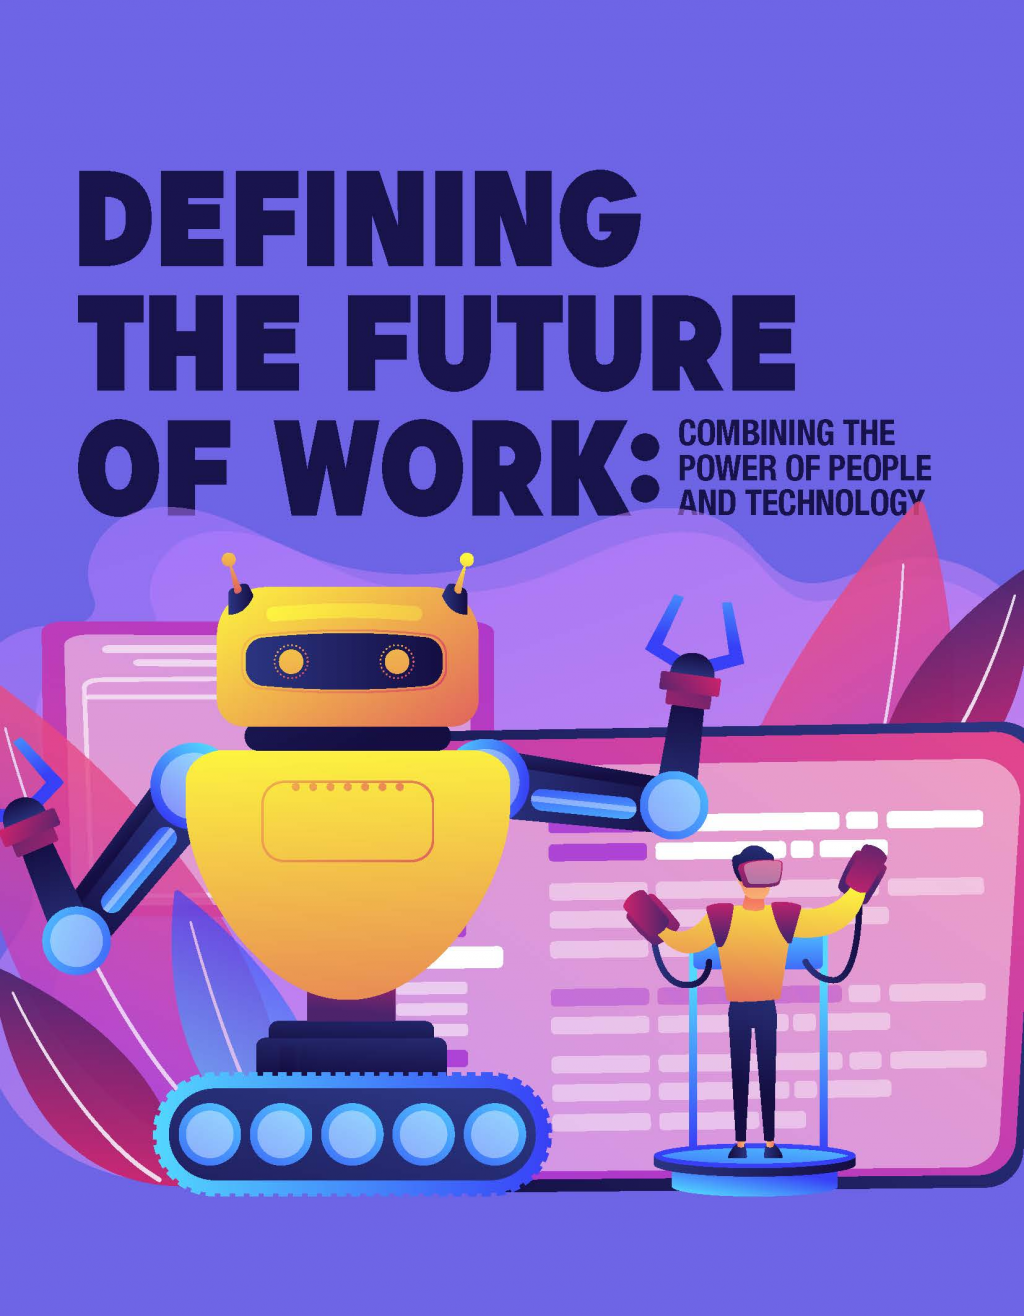 Download the Article - Defining the Future of Work: Combining the Power of People and Technology